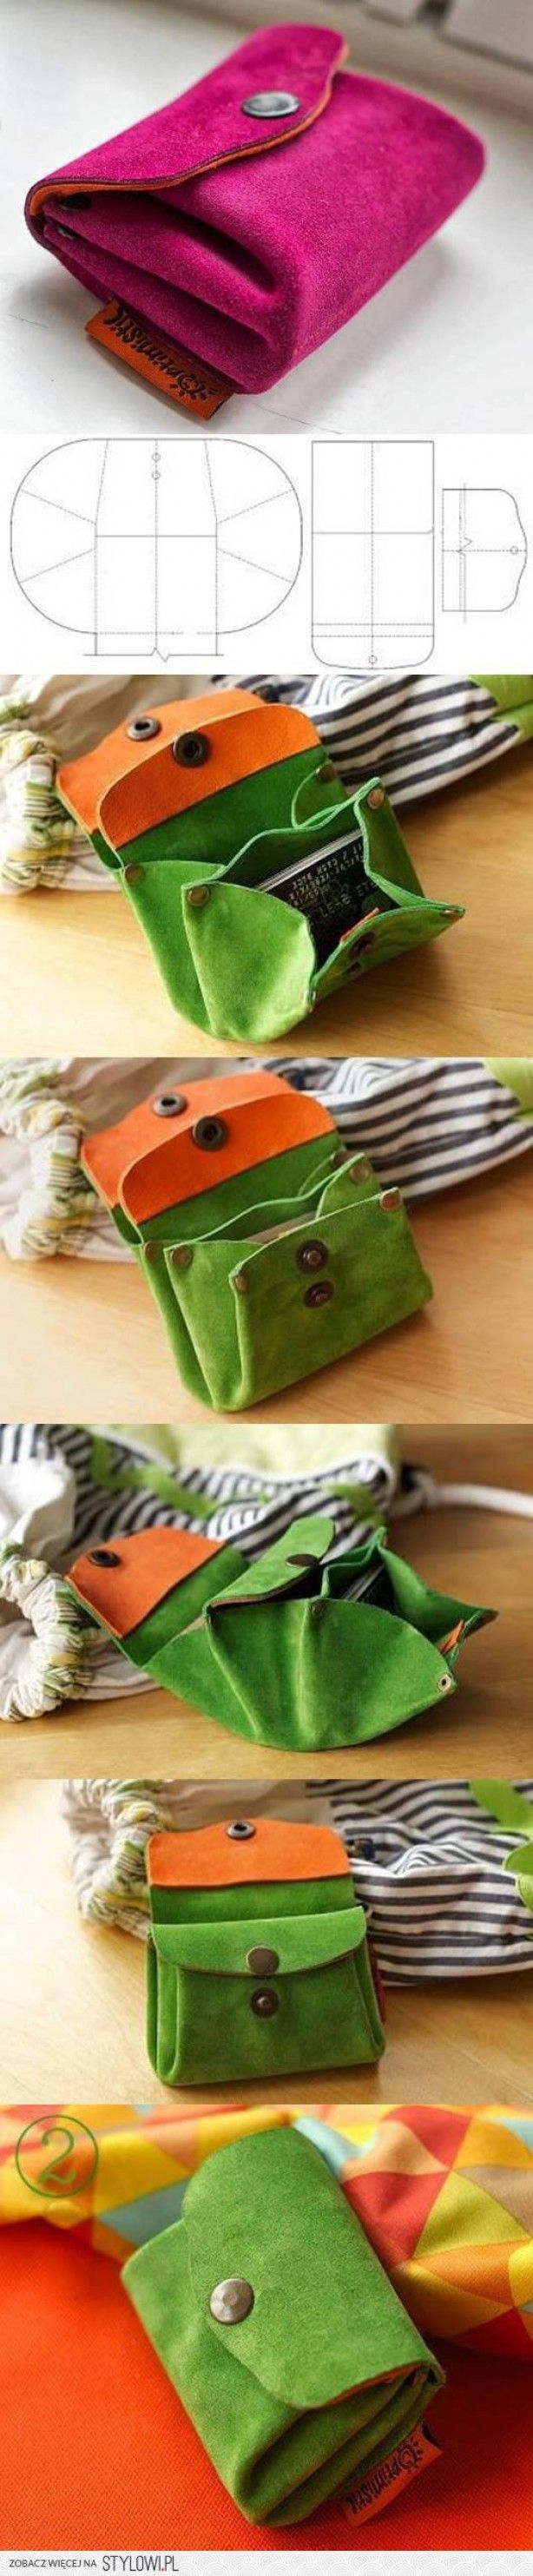 Make your own purse - seems to just link to the image, but the idea should be easy enough to follow.